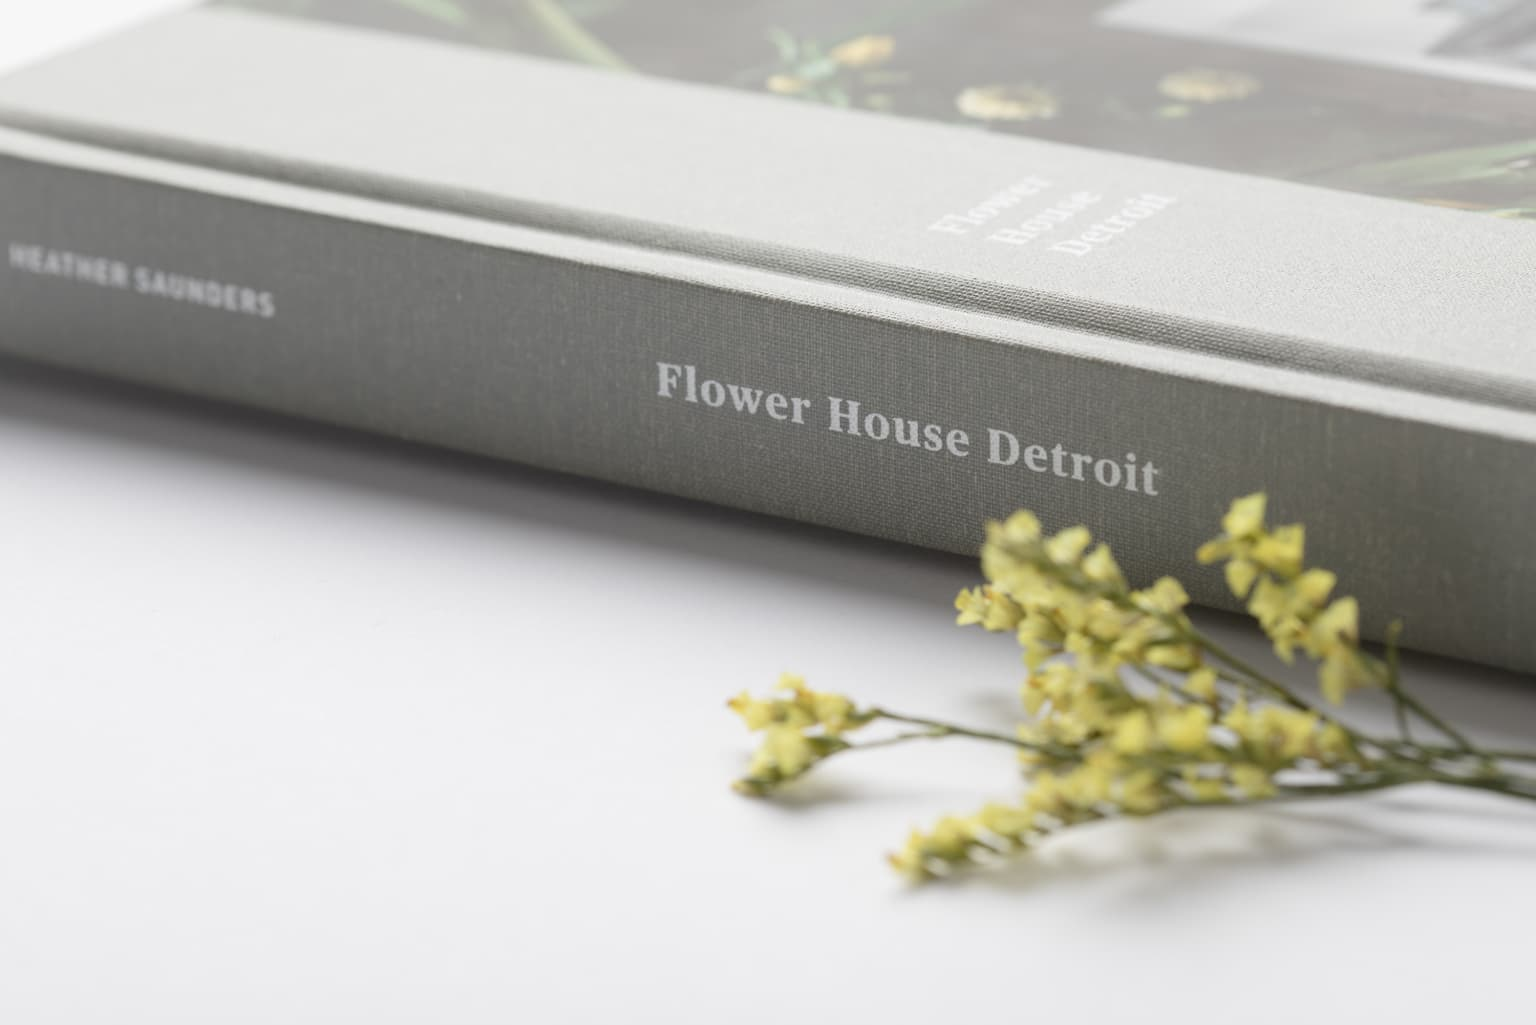 Flower House Detroit Book